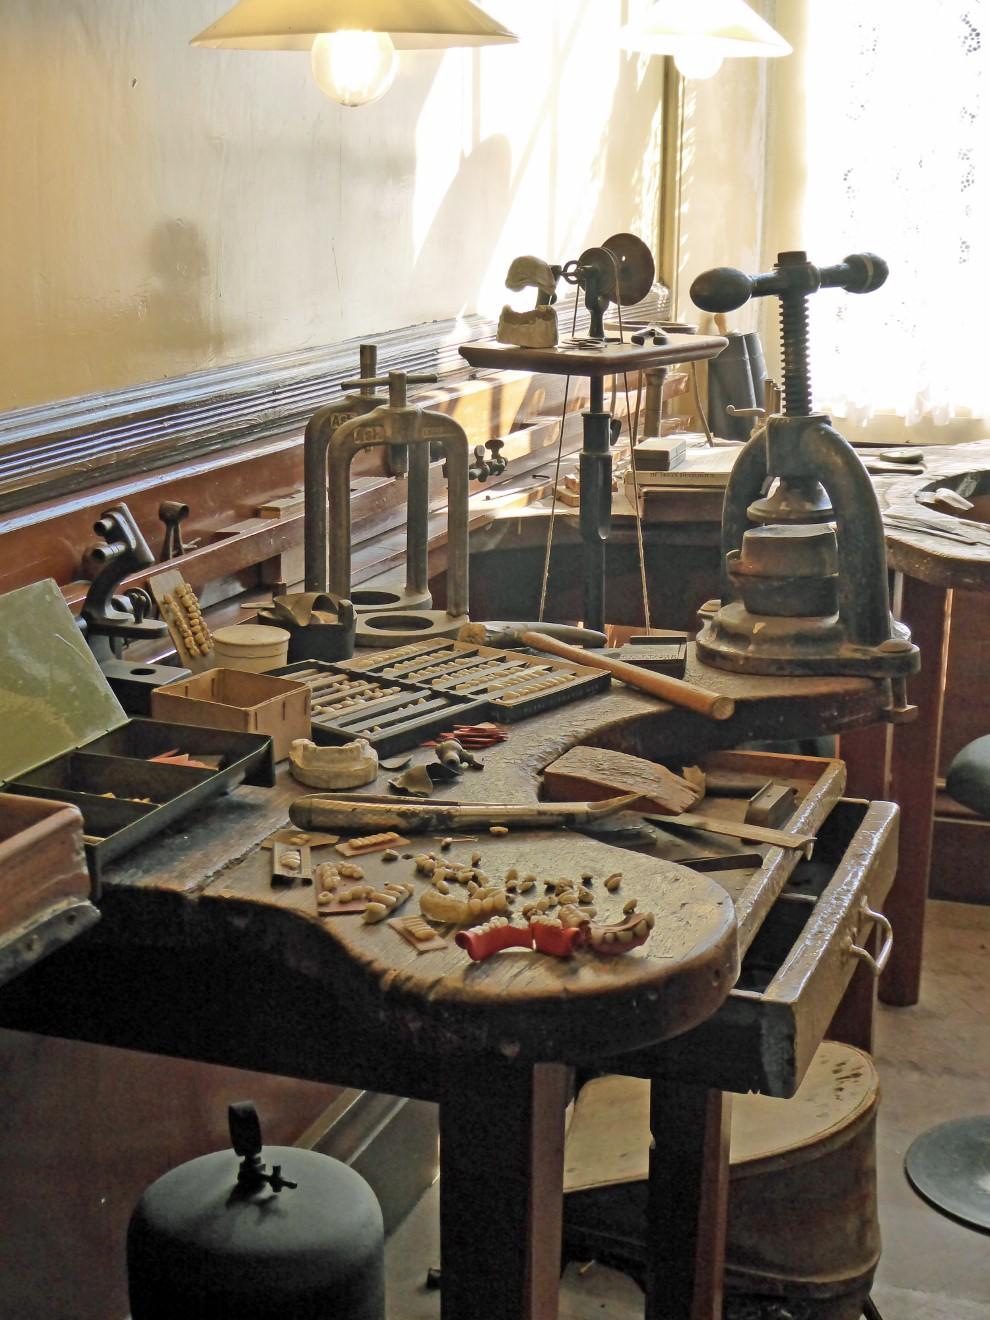 Wooden counter with teeth and tools